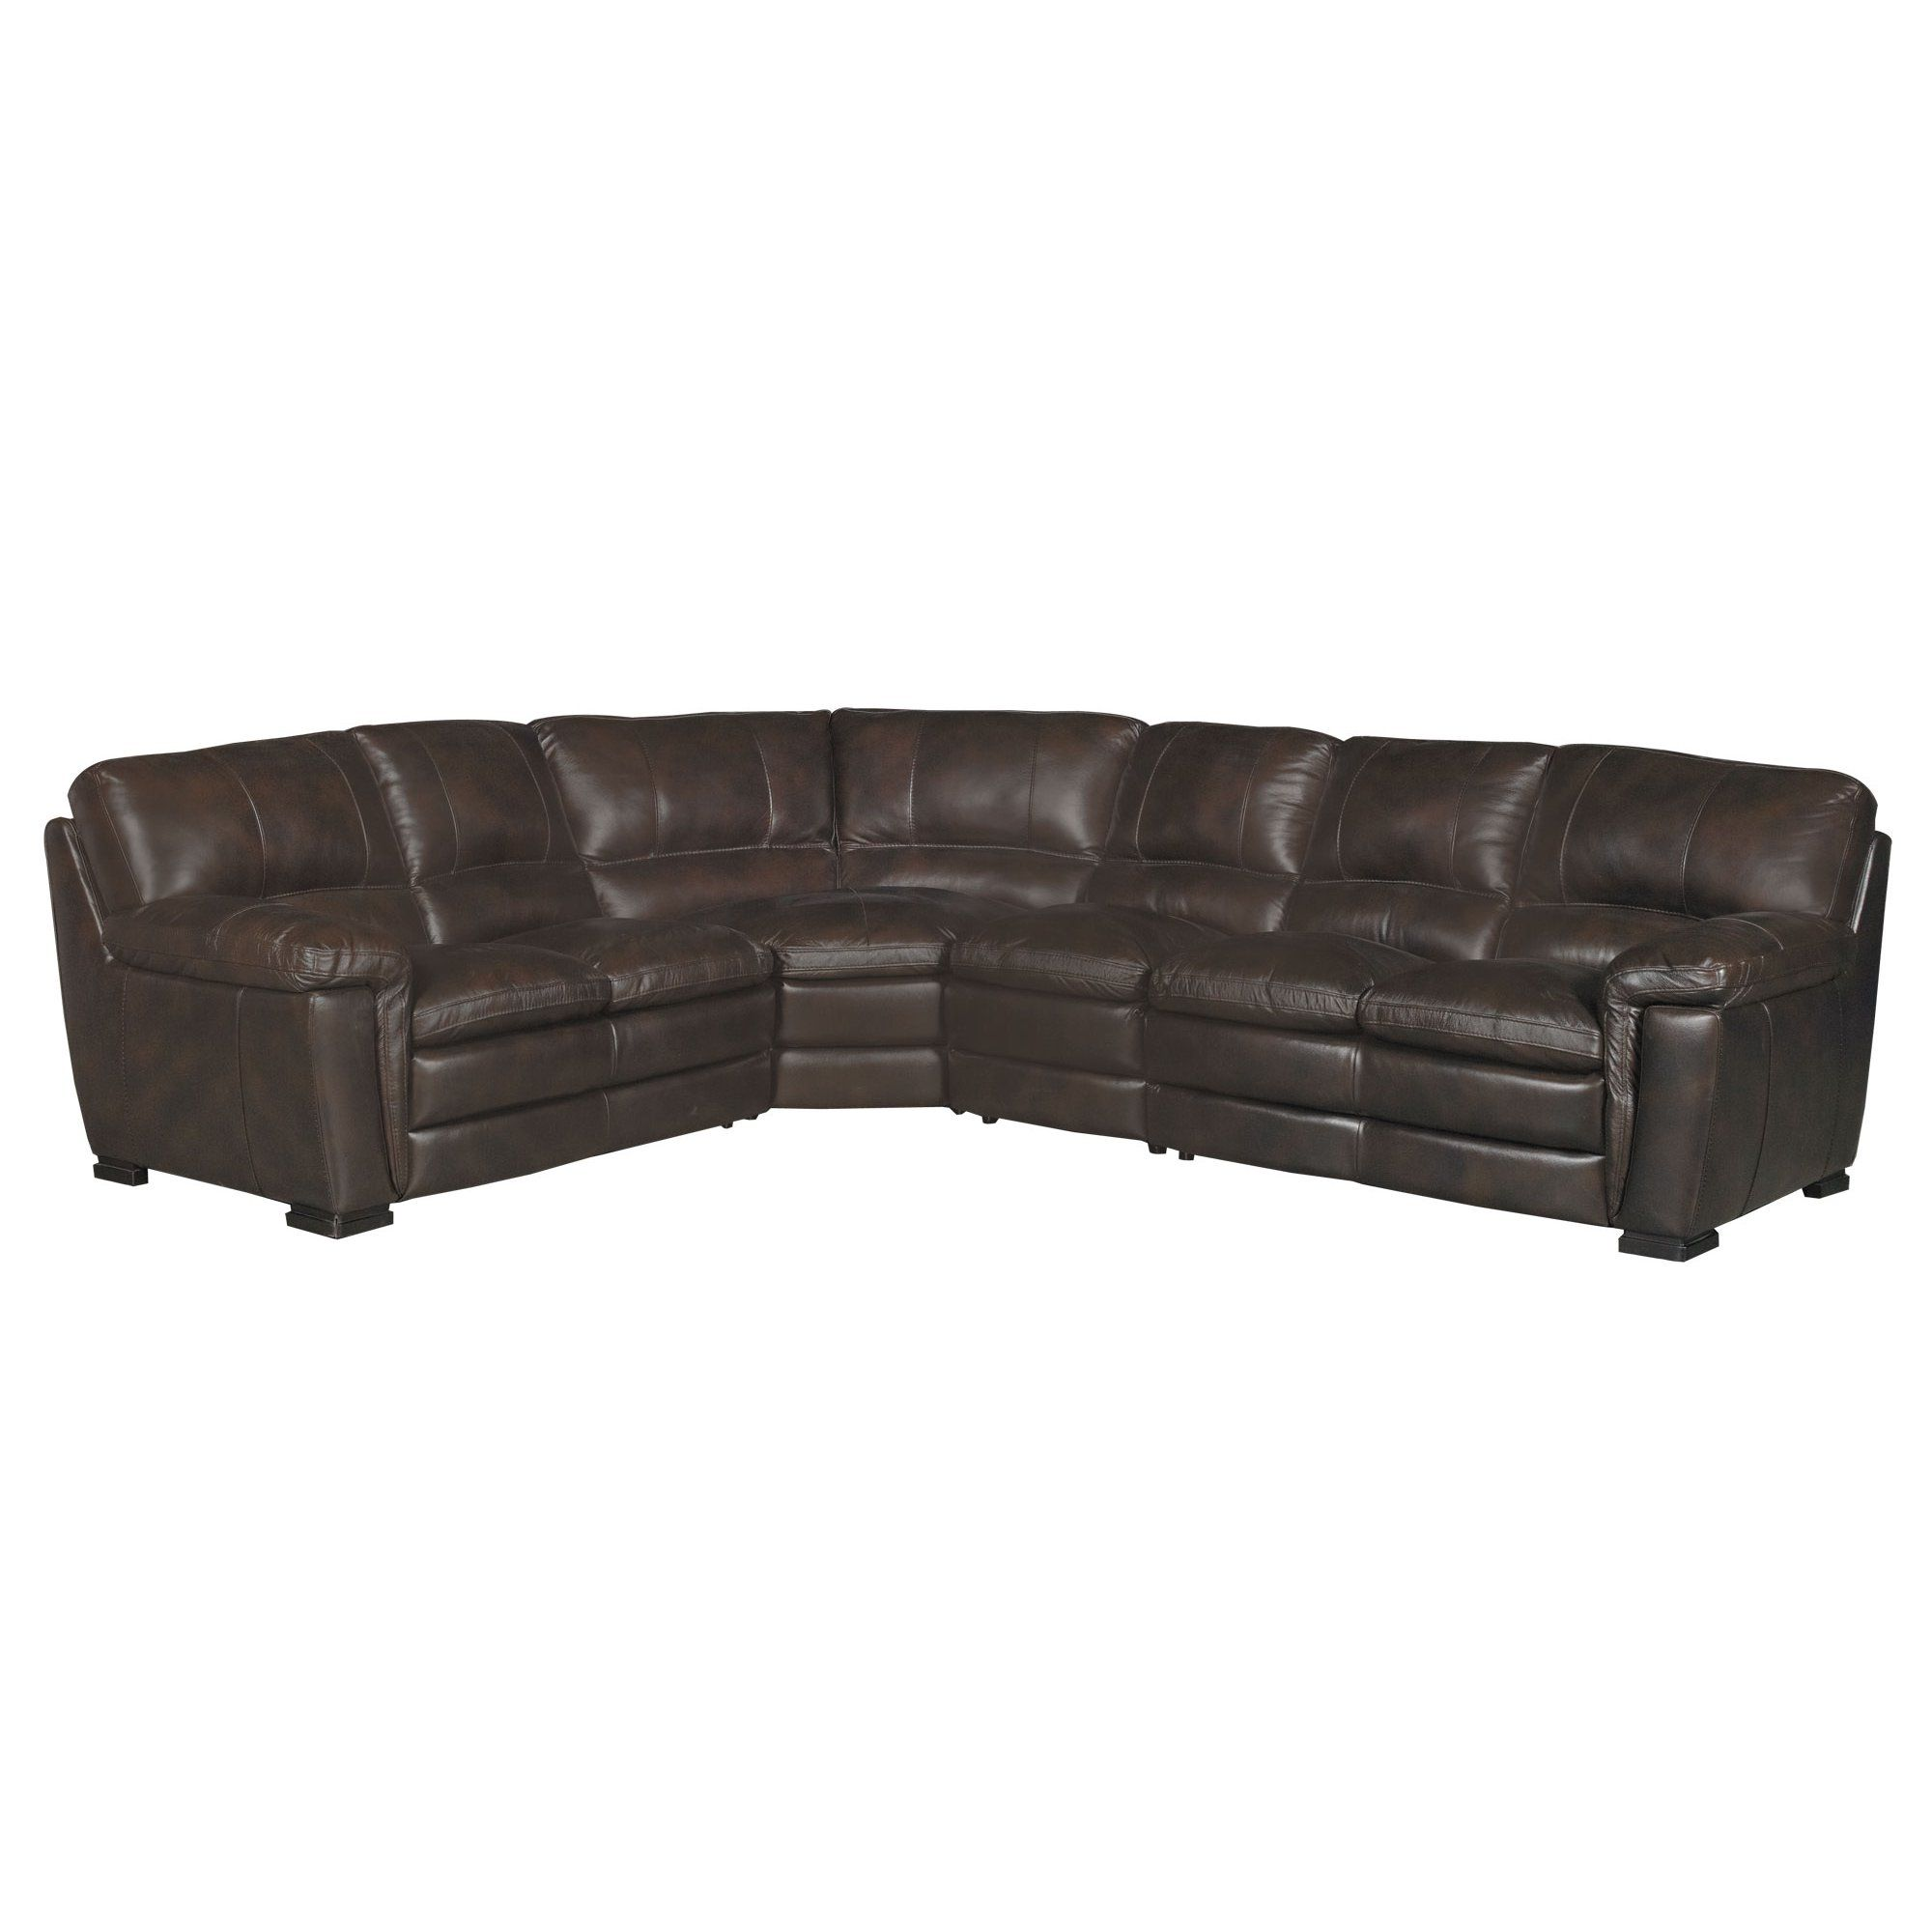 Contemporary 4 Piece Brown Leather Sectional Sofa Tanner Leather Sectional Leather Couch Sectional Leather Sectional Sofas